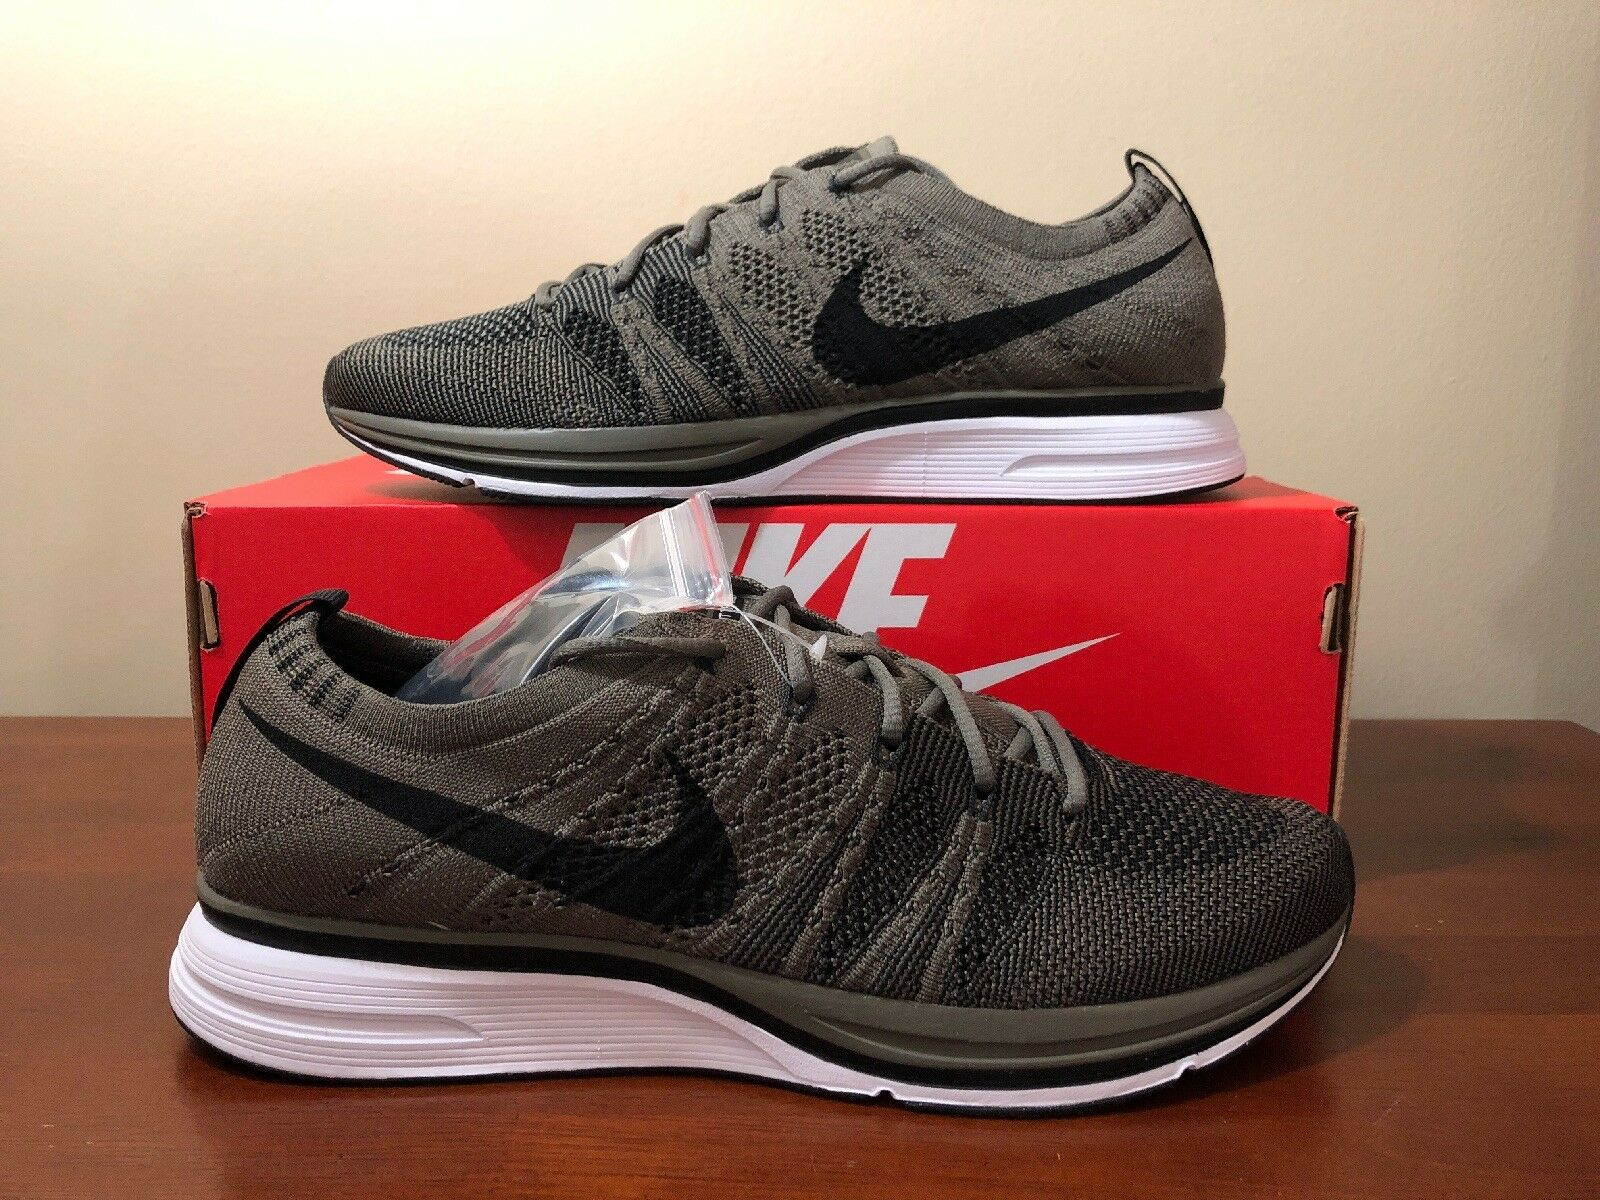 Nike Flyknit Trainer Running shoes Olive Black AH8396 200 Size 8 Women's 9.5